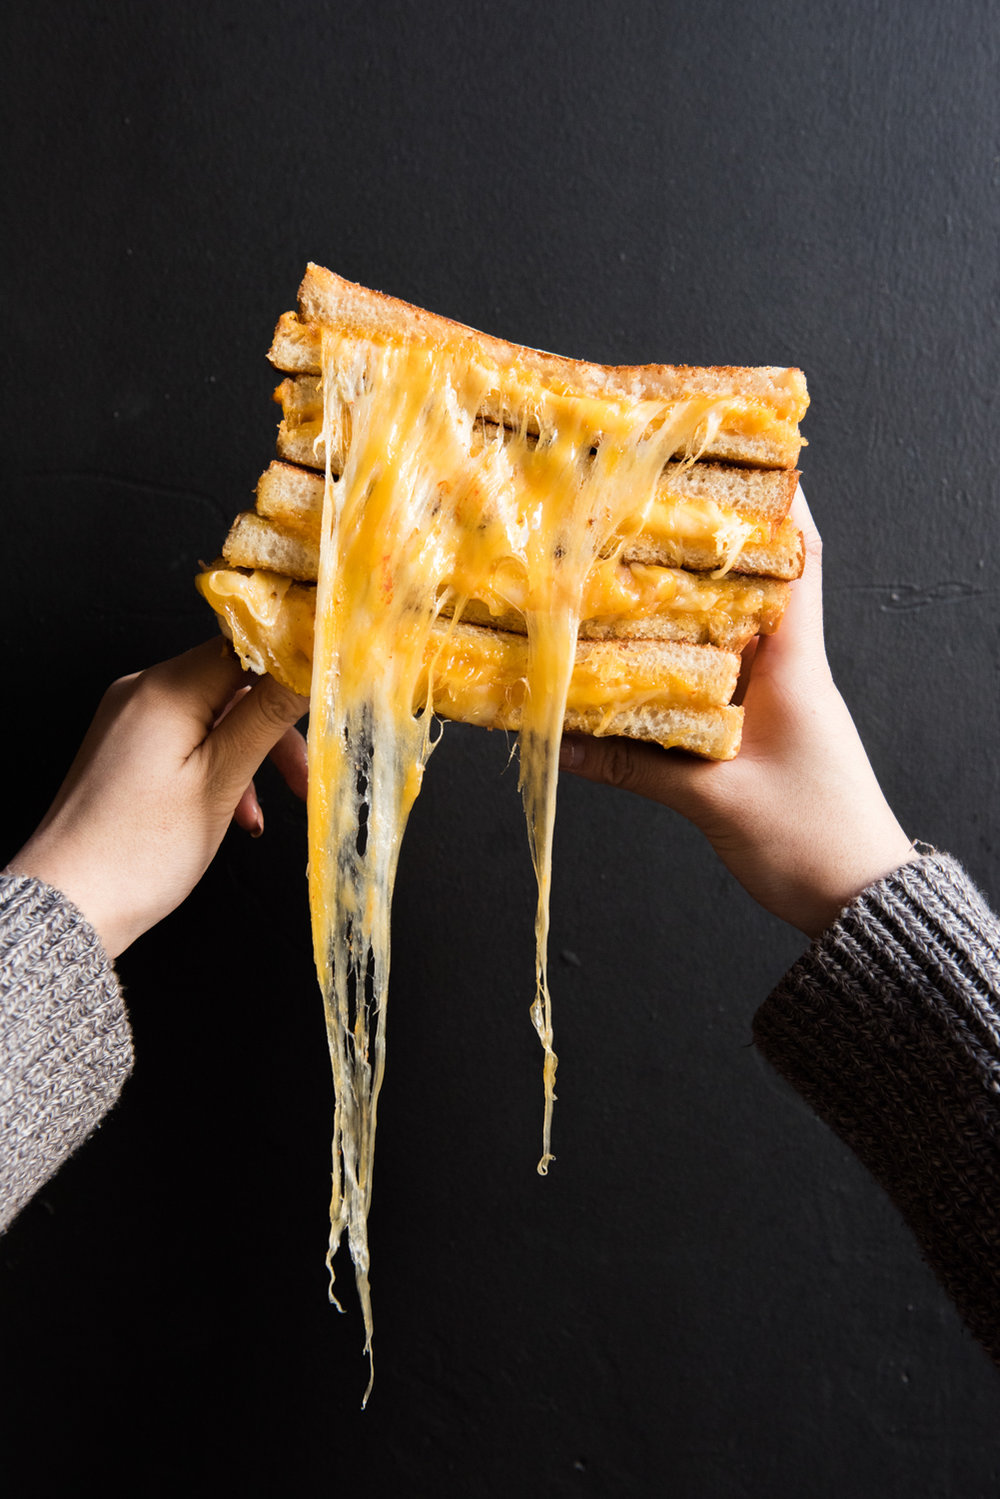 The Melt | Food Photography by Melissa de Mata